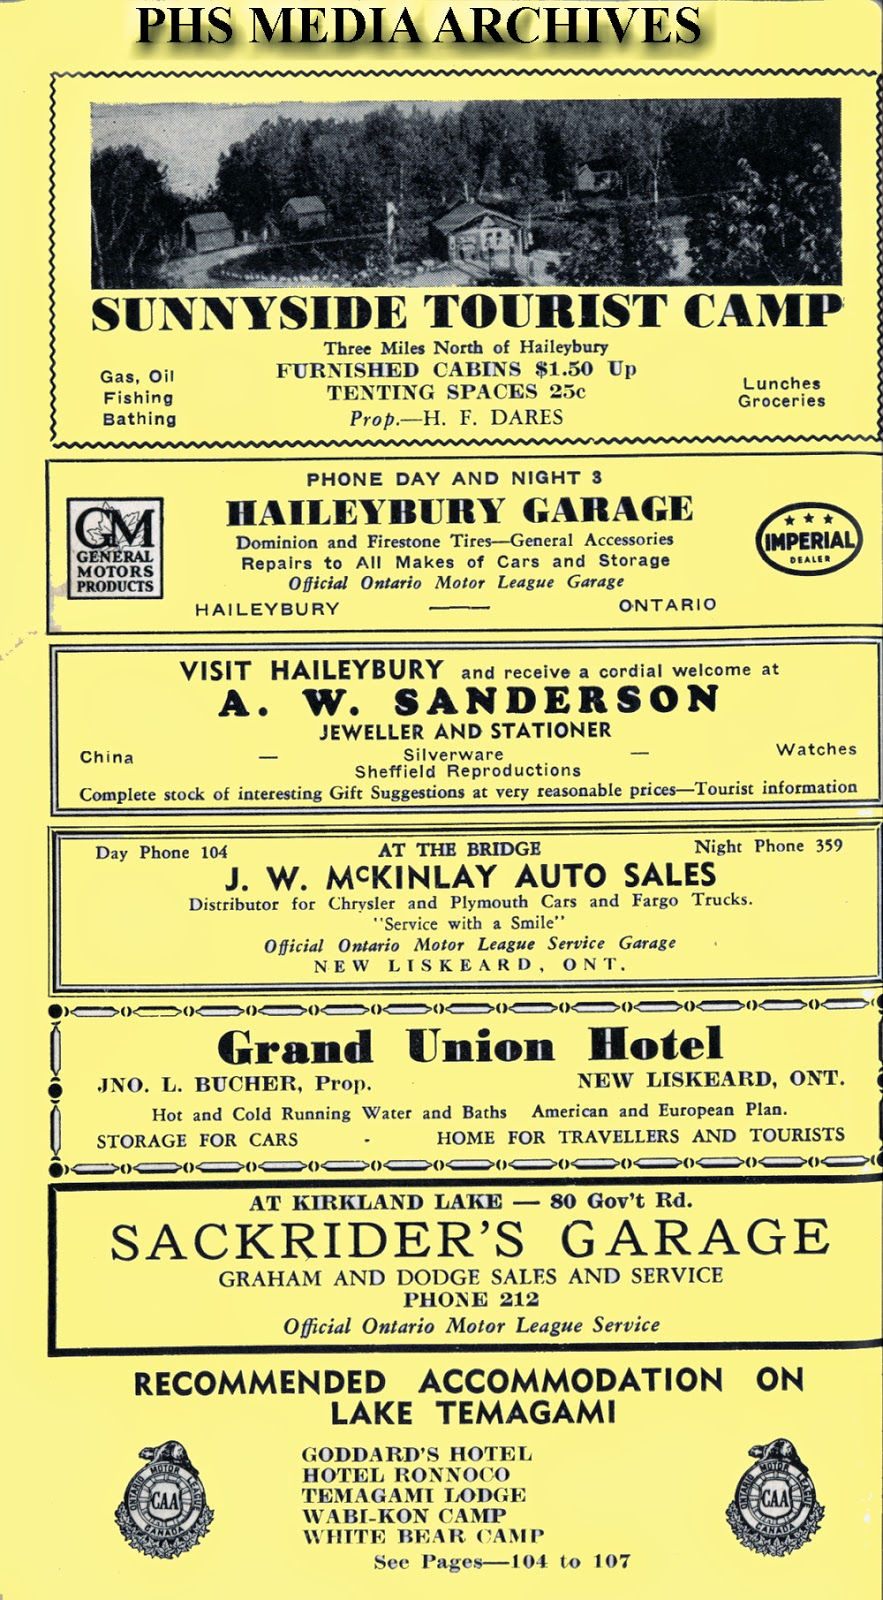 Sackrider's Garage and JW McKinlay Auto Sales occupied space with Sunnyside  Tourist Camp The Haileybury Garage sold GM cars while McKinlay dealt Fords.